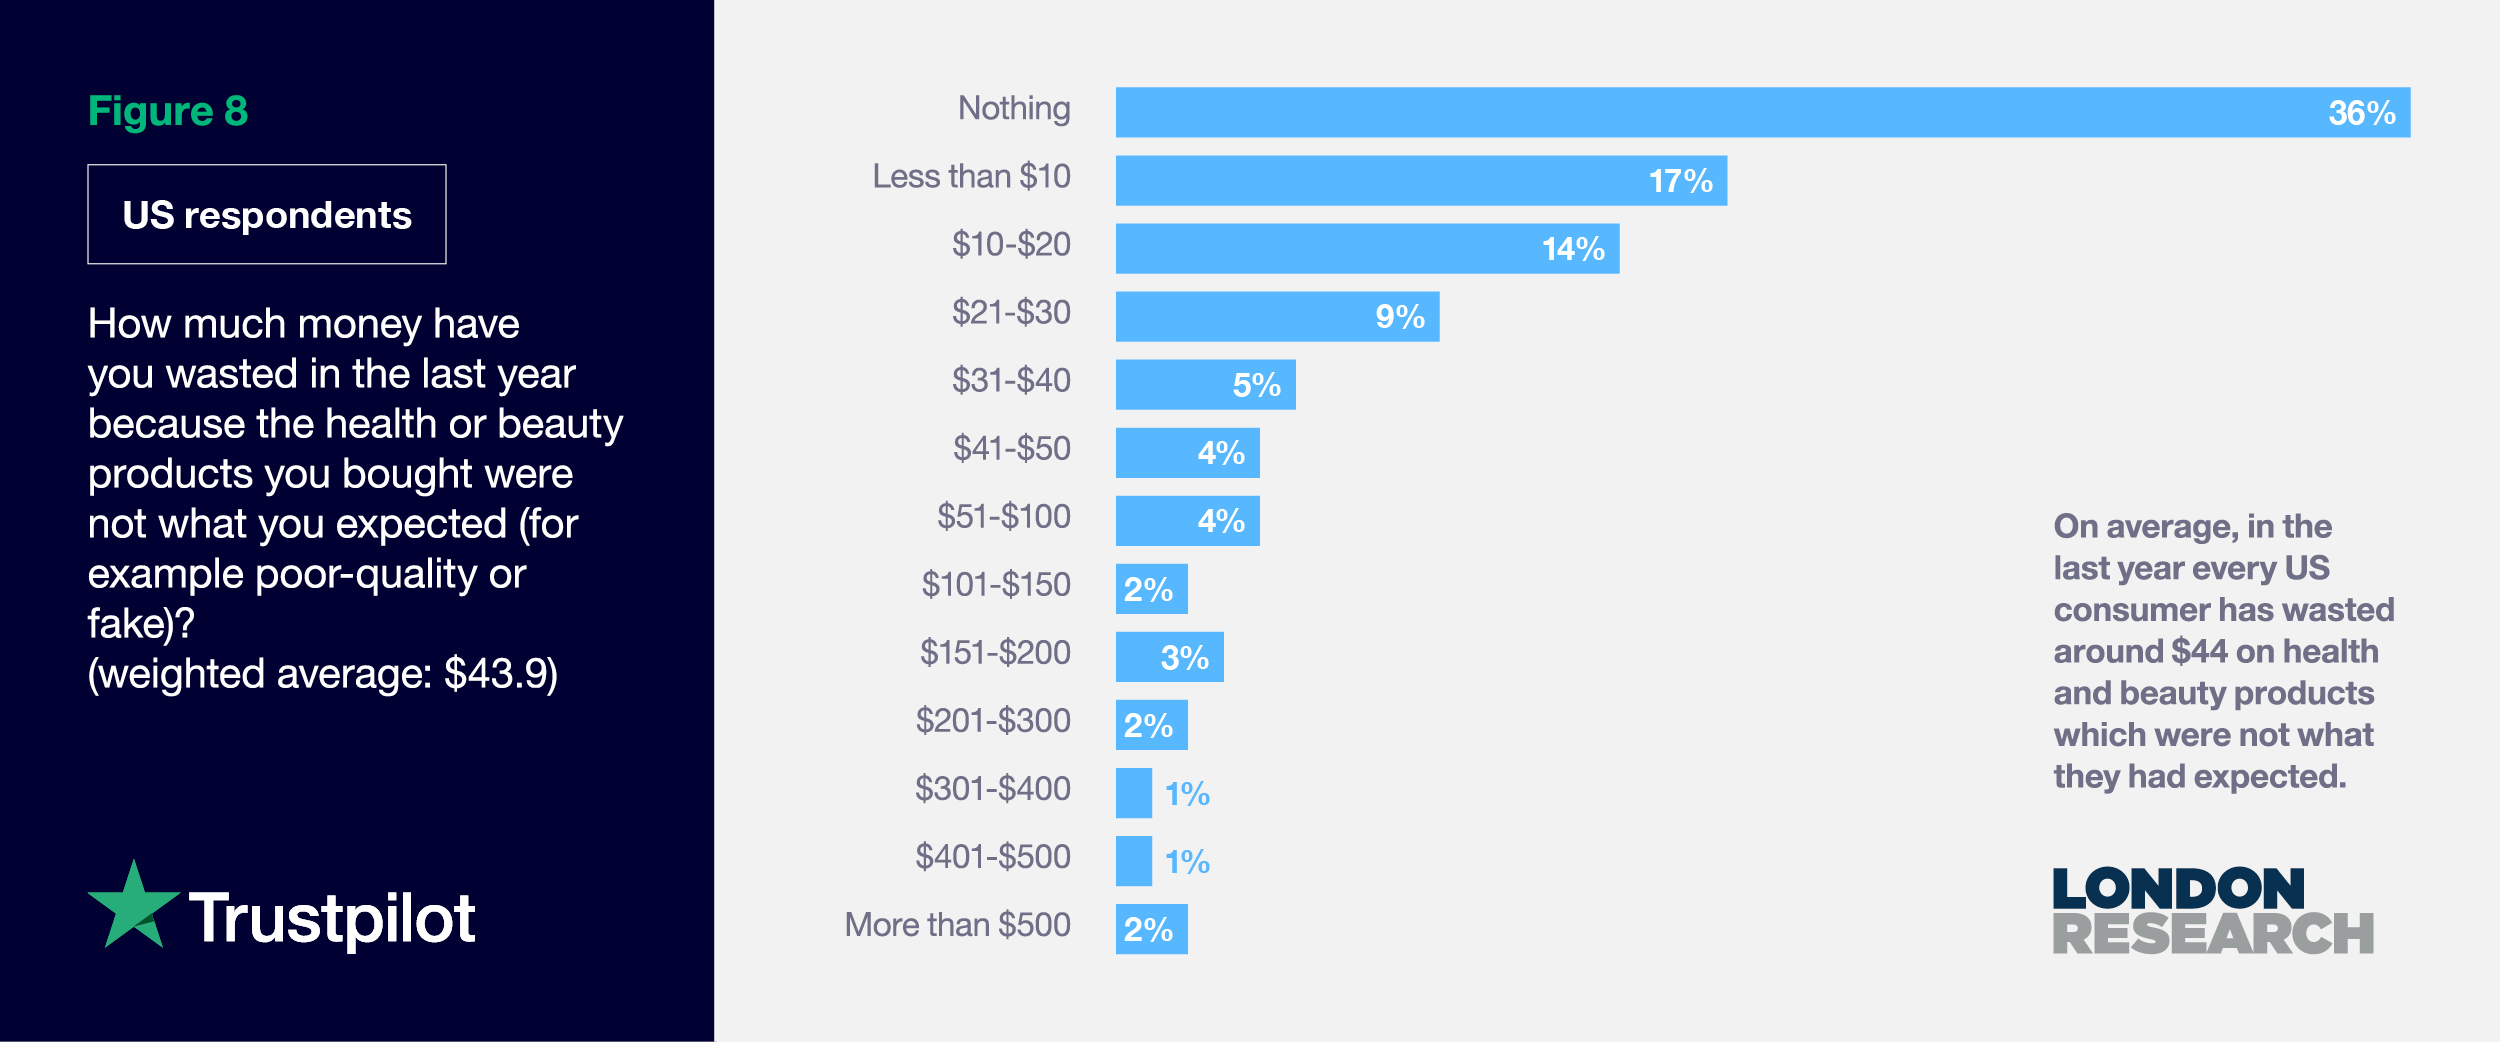 Figure 8: (US Respondents) How much money have you wasted in the last year because health or beauty products were poor quality or fake?